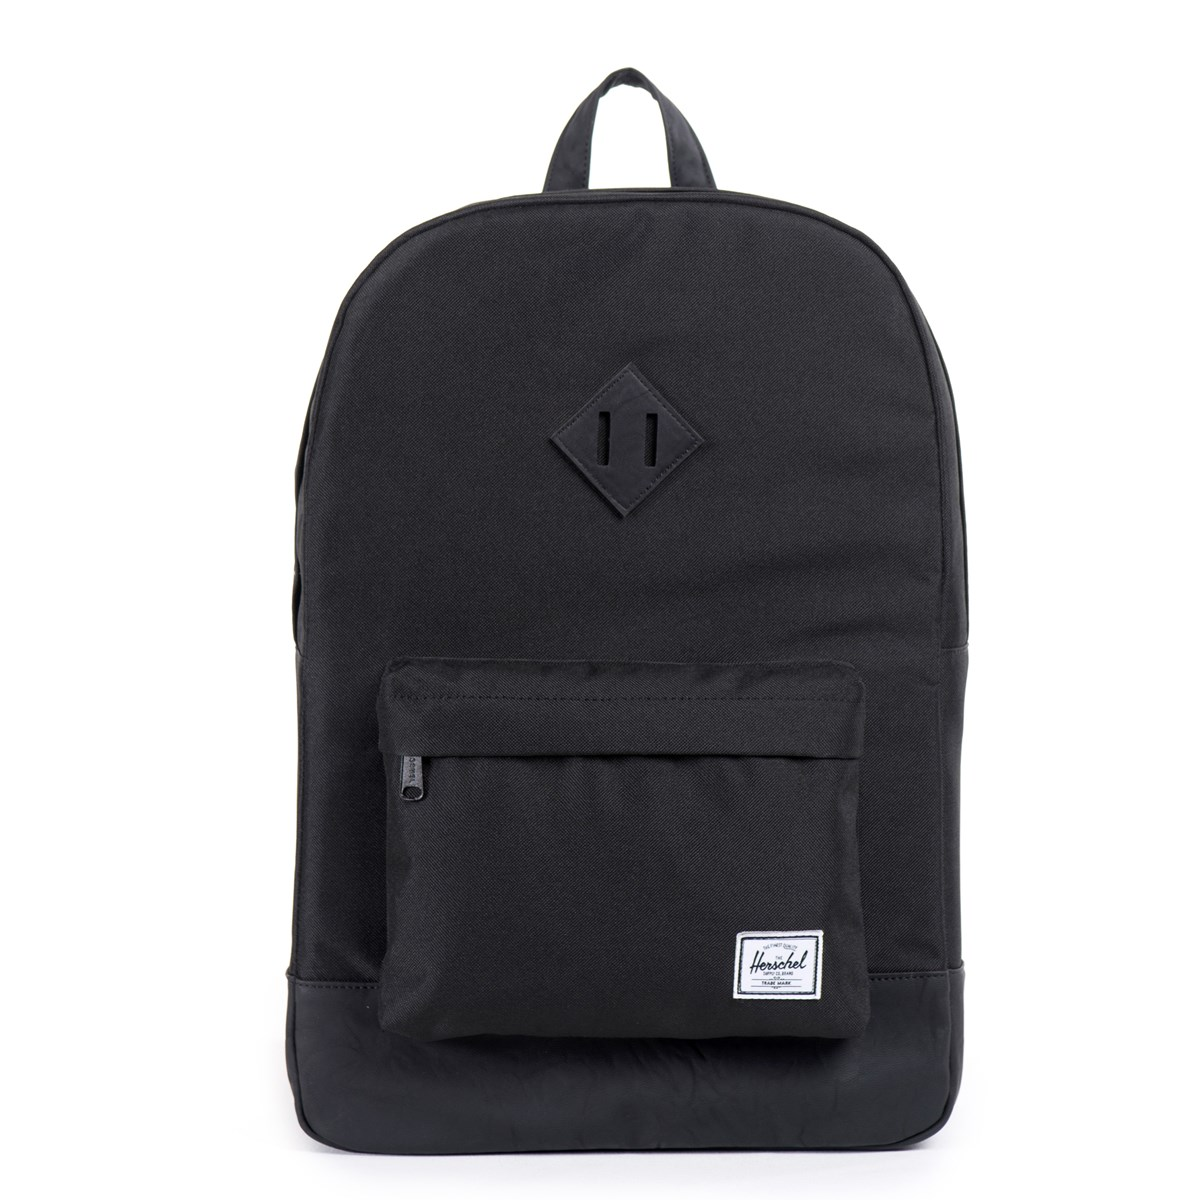 Heritage Backpack in Black